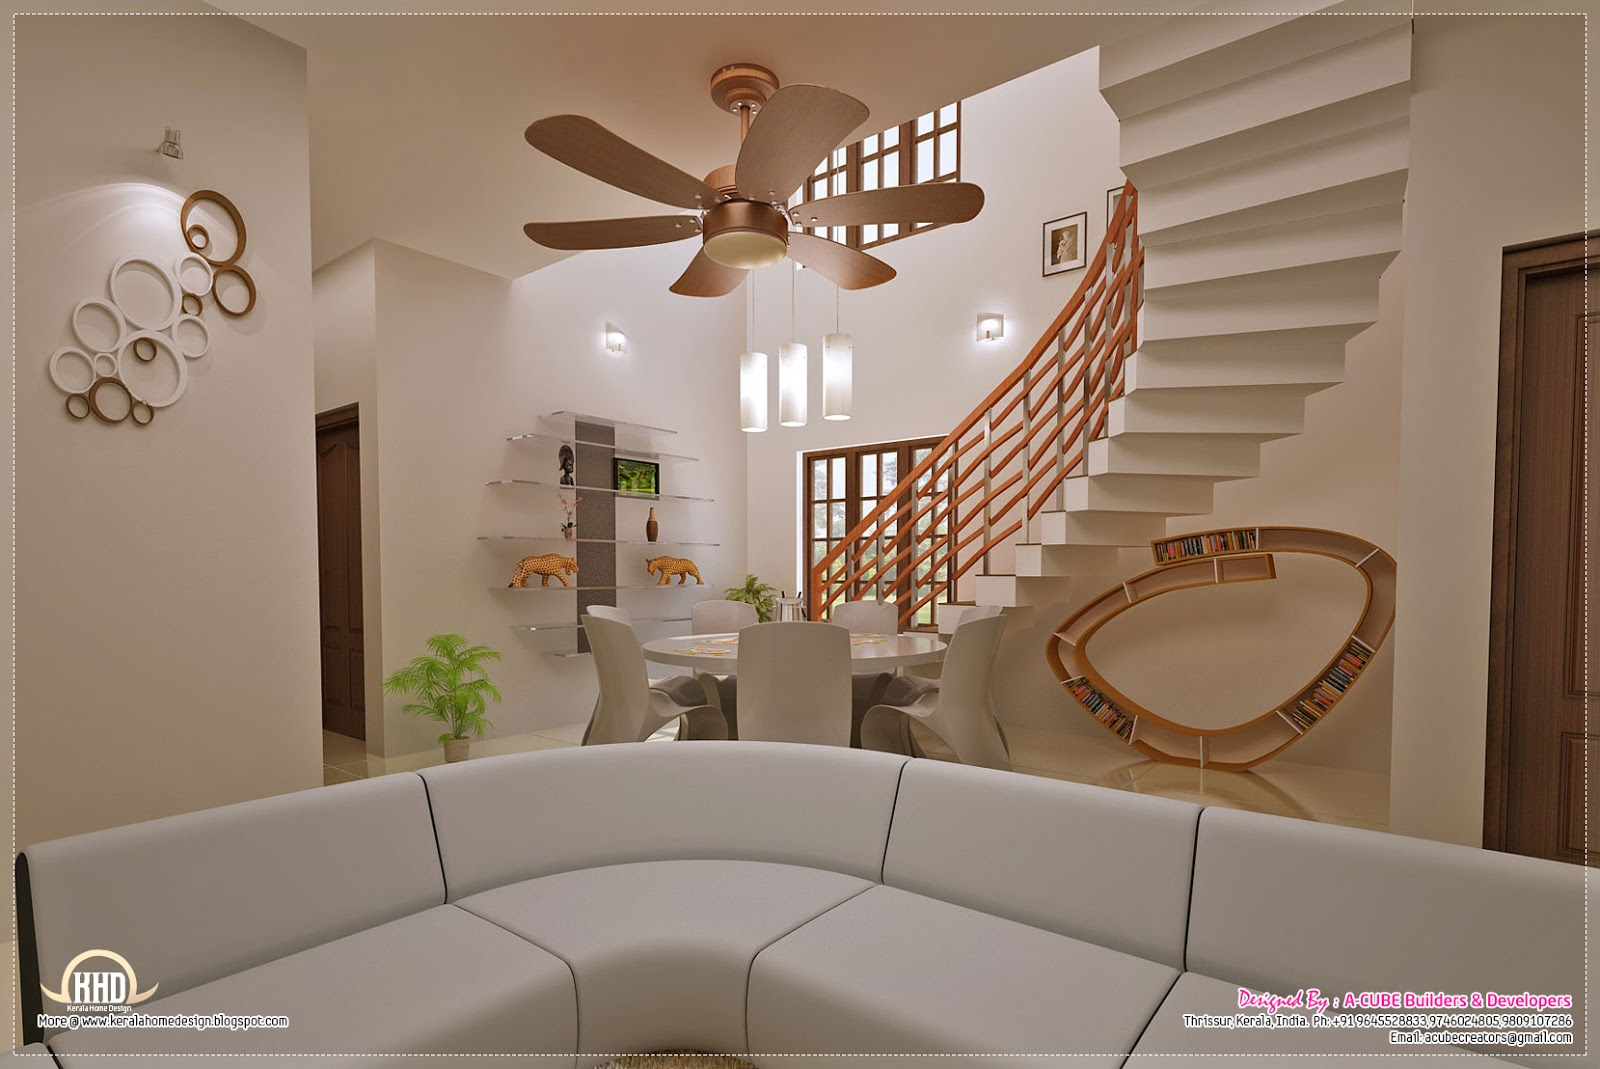 Awesome interior decoration ideas kerala home design and House model interior design